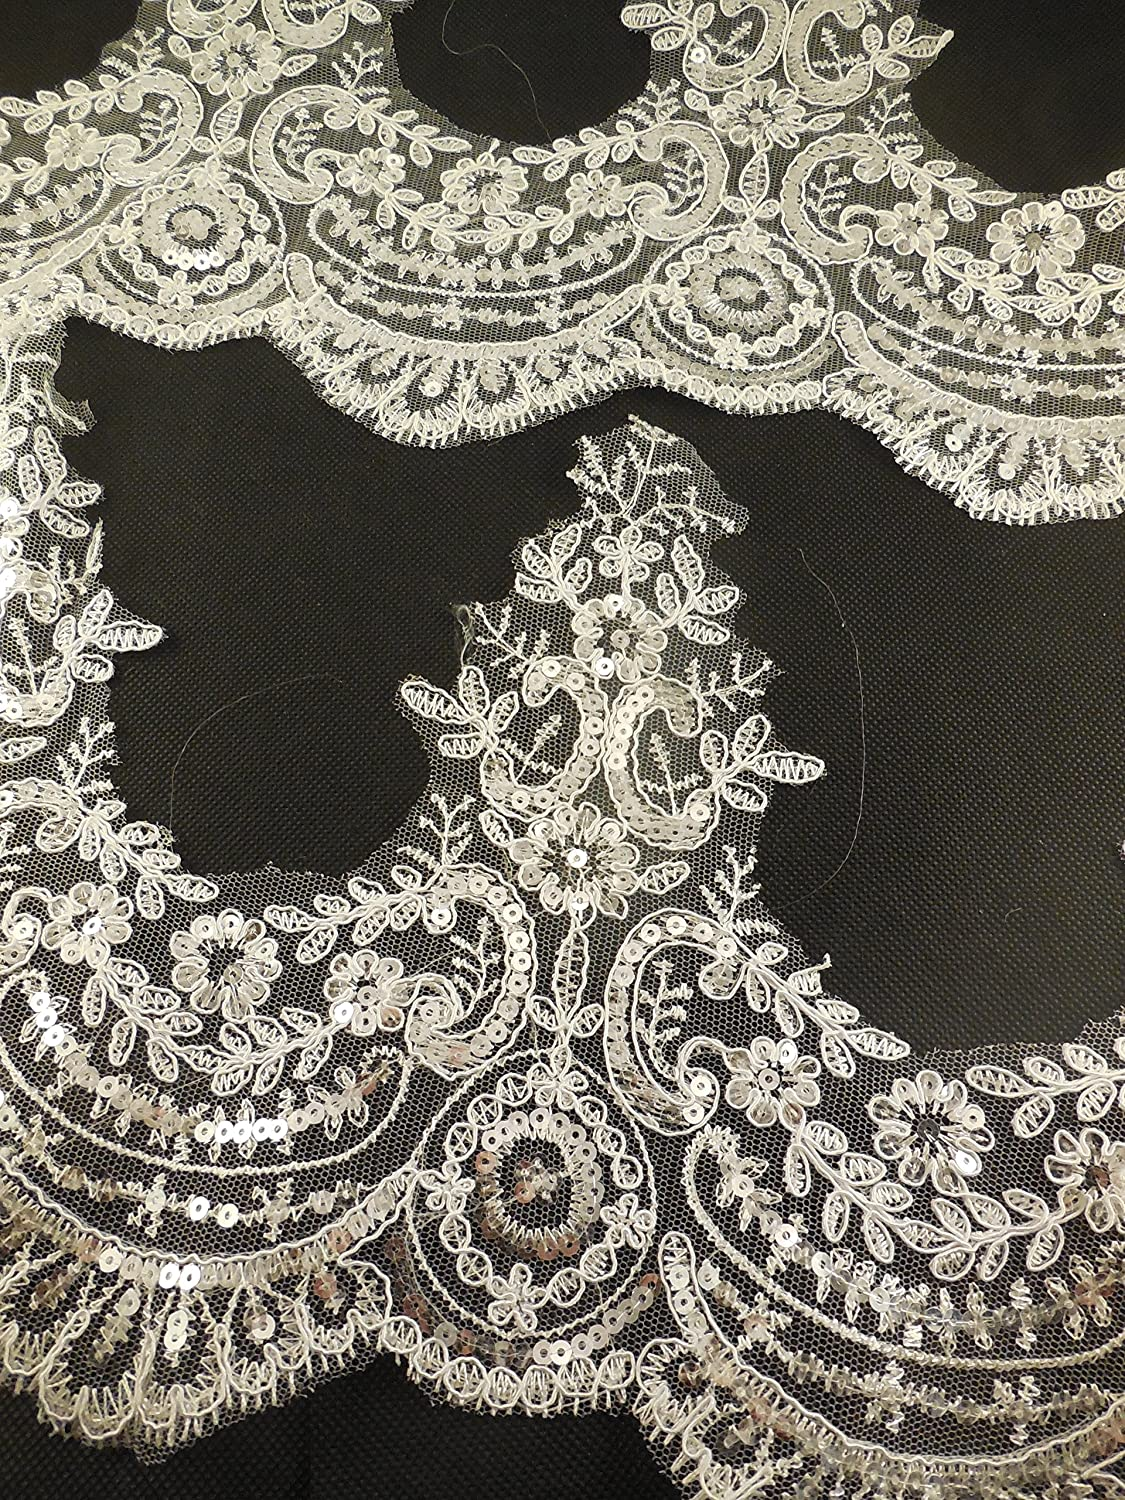 XL13b ivory Craftuneed white or ivory floral sequins eyelash lace trim Bridal wedding tulle sequined lace trim Per Yard 90cm FREE UK PP Fast Dispatch